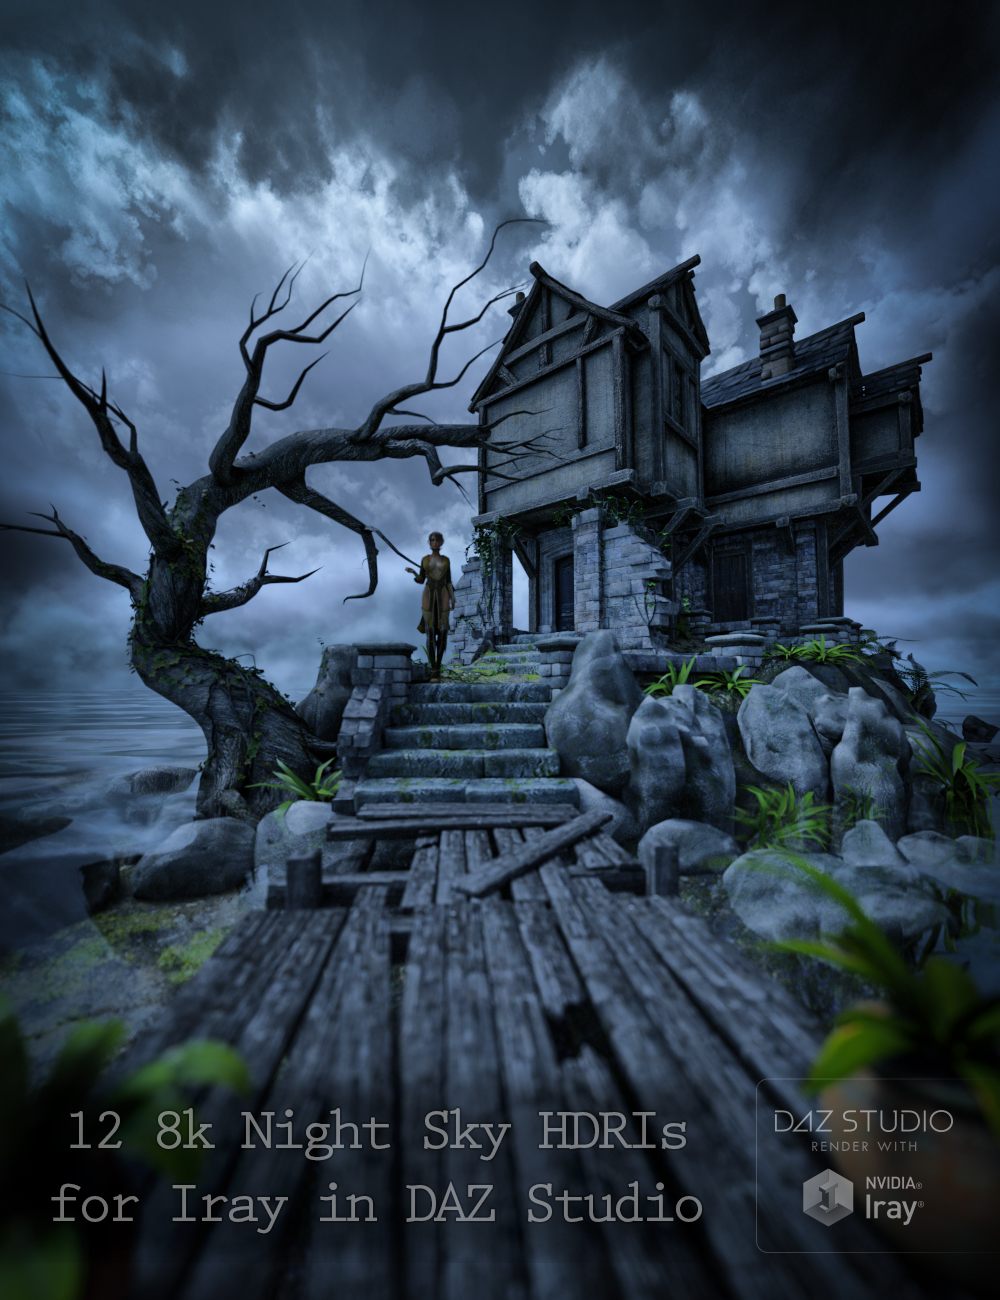 Skies of iRadiance - Night Sky HDRIs for Iray by: DimensionTheory, 3D Models by Daz 3D